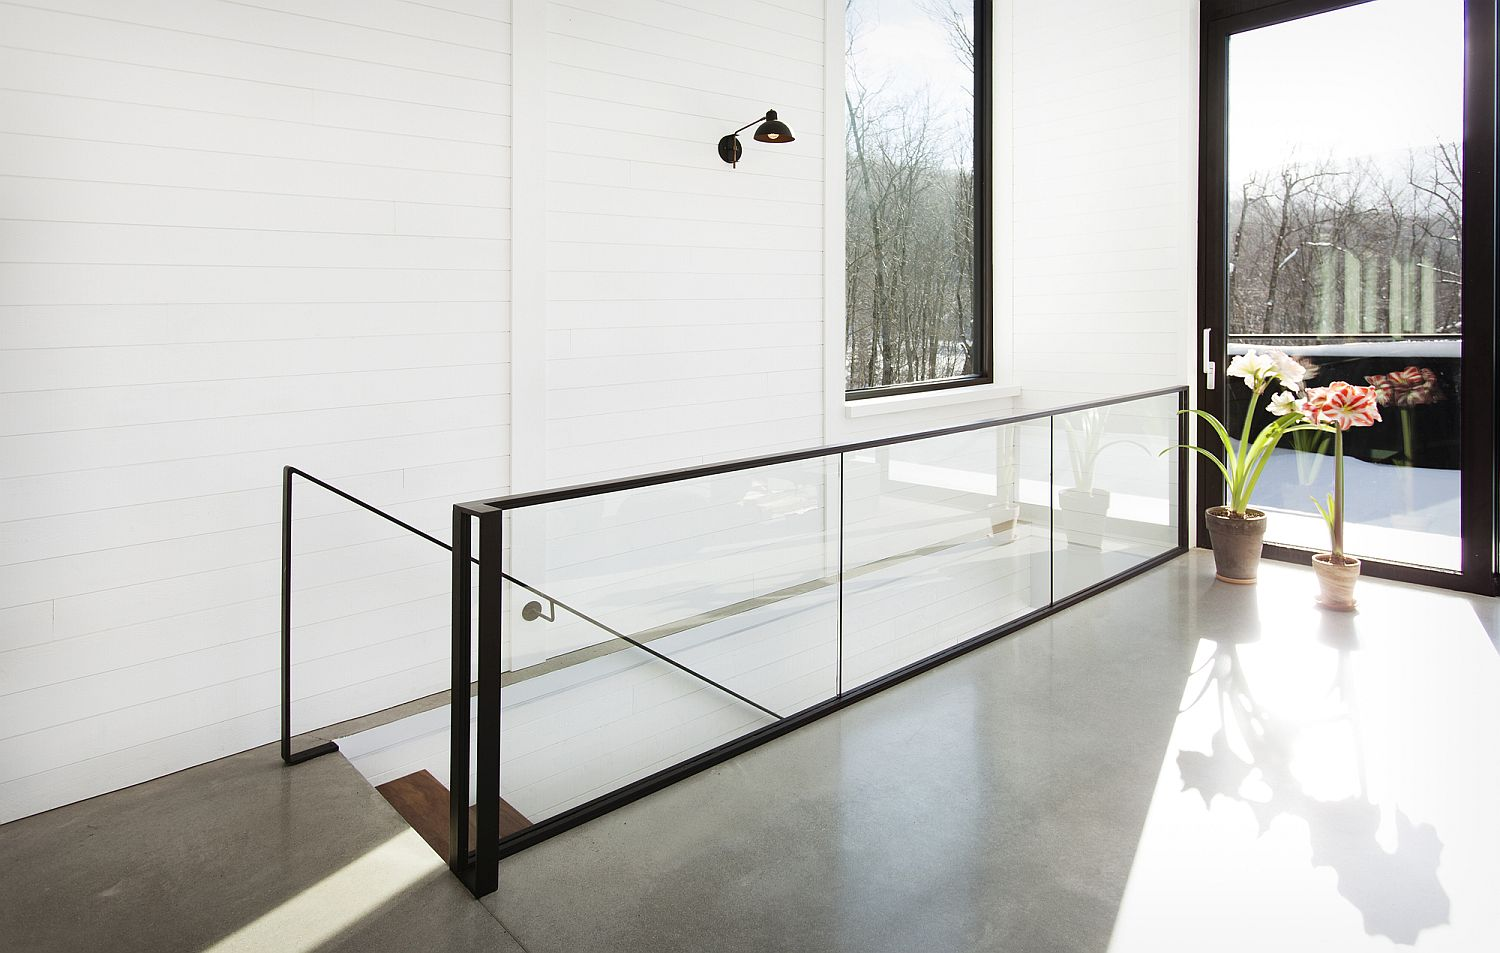 Sliding-glass-doors-bring-natural-light-into-the-mountain-home